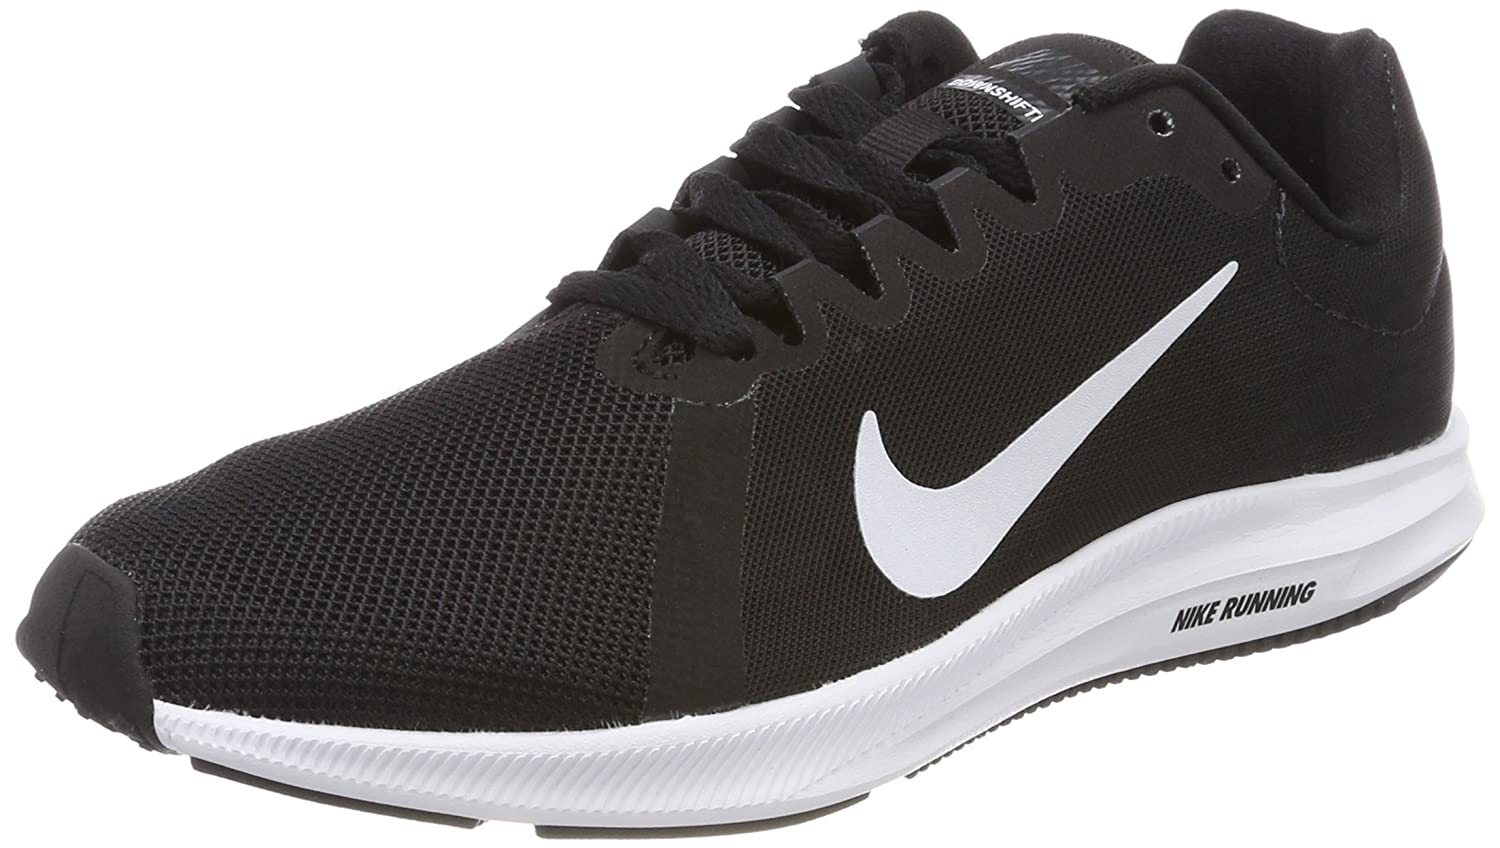 NIKE 6 Women's Downshifter 8 Running Shoe B0761X5GDJ 6 NIKE M US|Black/White - Anthracite f964ea